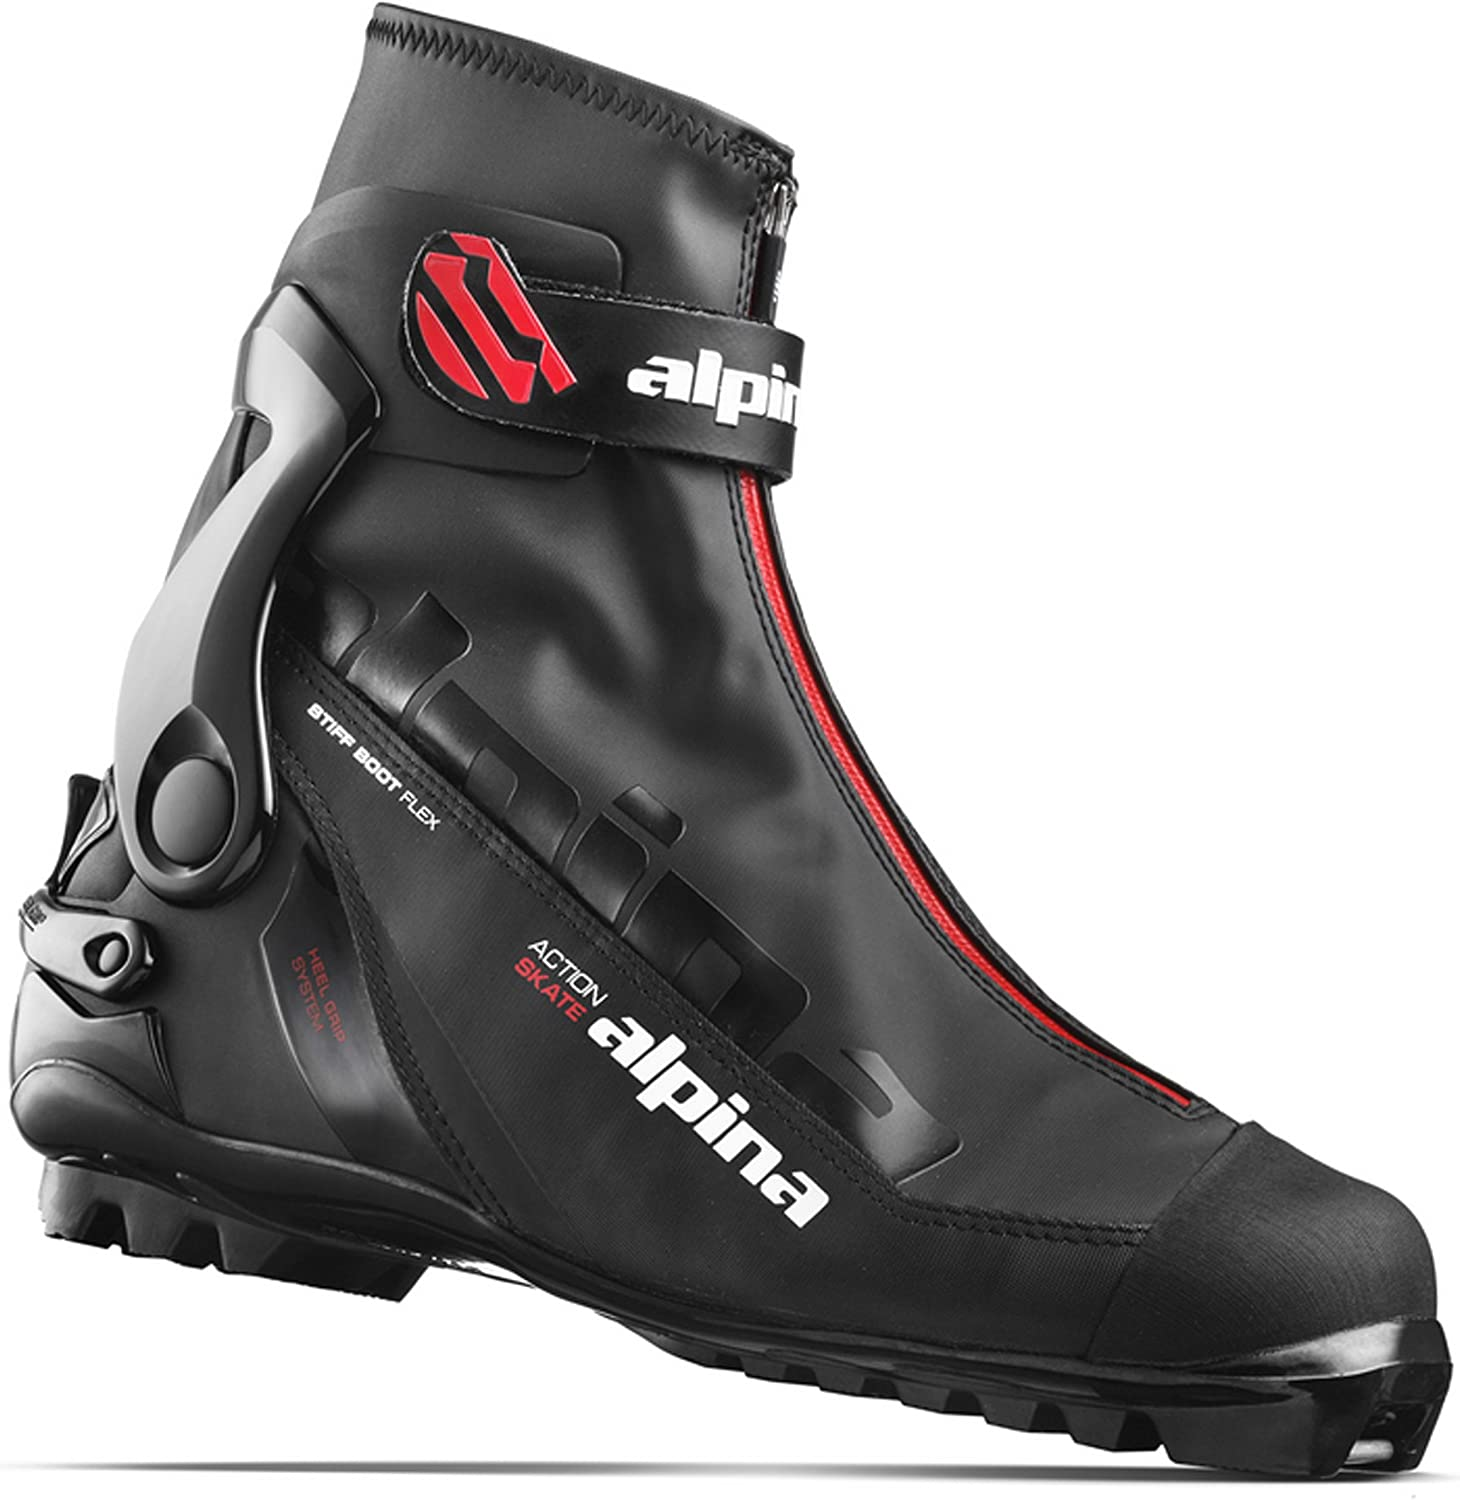 Sale Alpina Sports Ask Skate Cross Cash special price Ski Country Boots